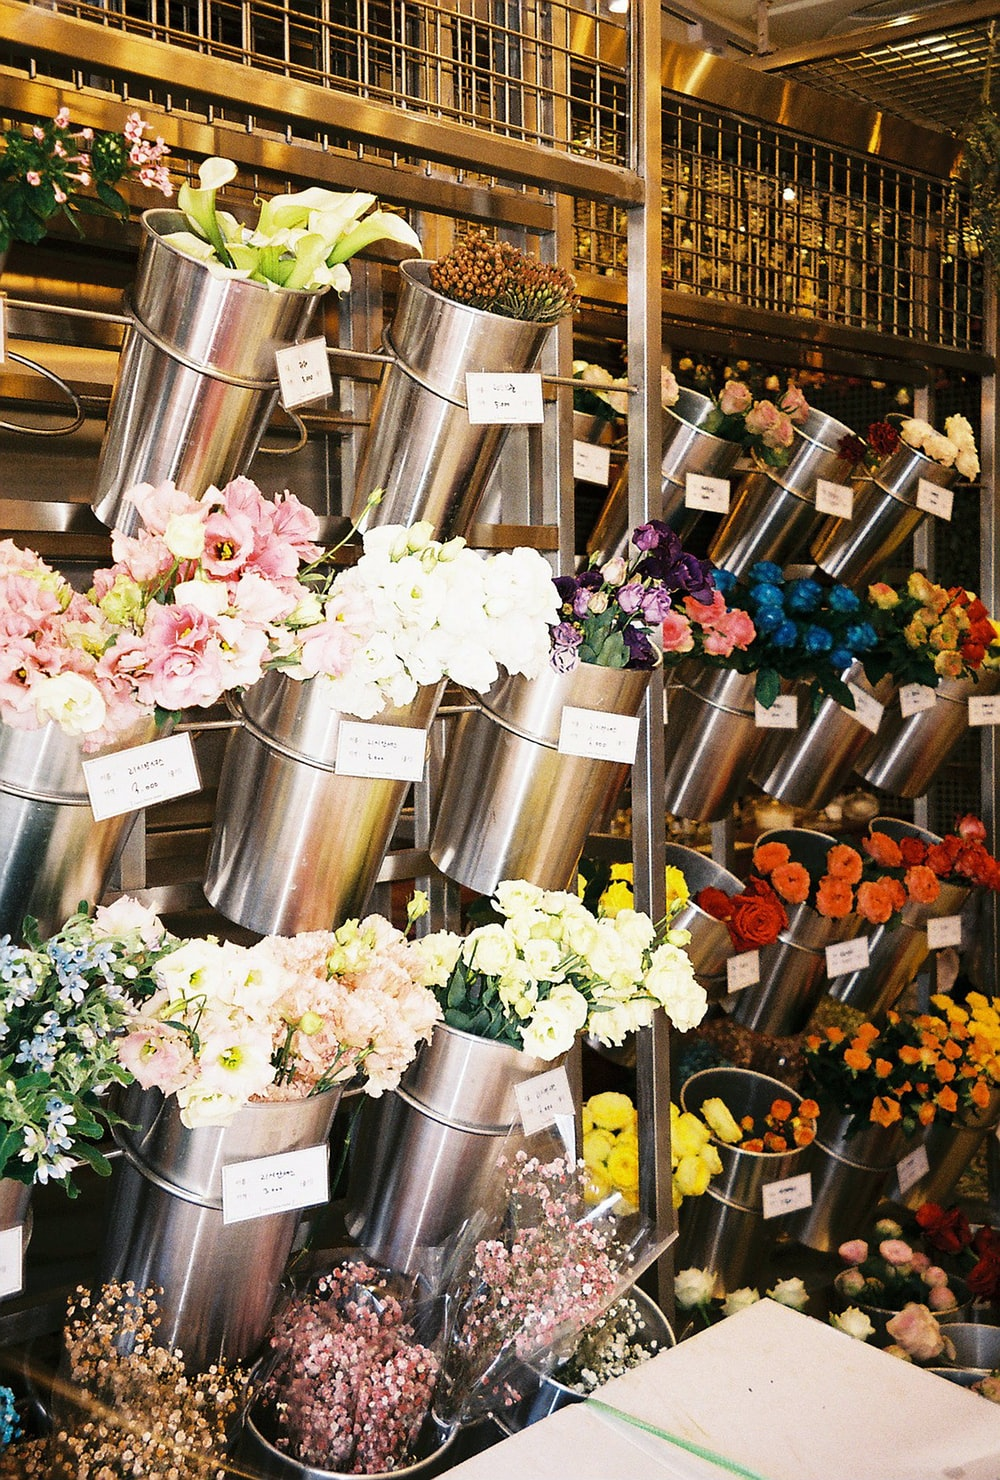 pink and white flowers in stainless steel containers